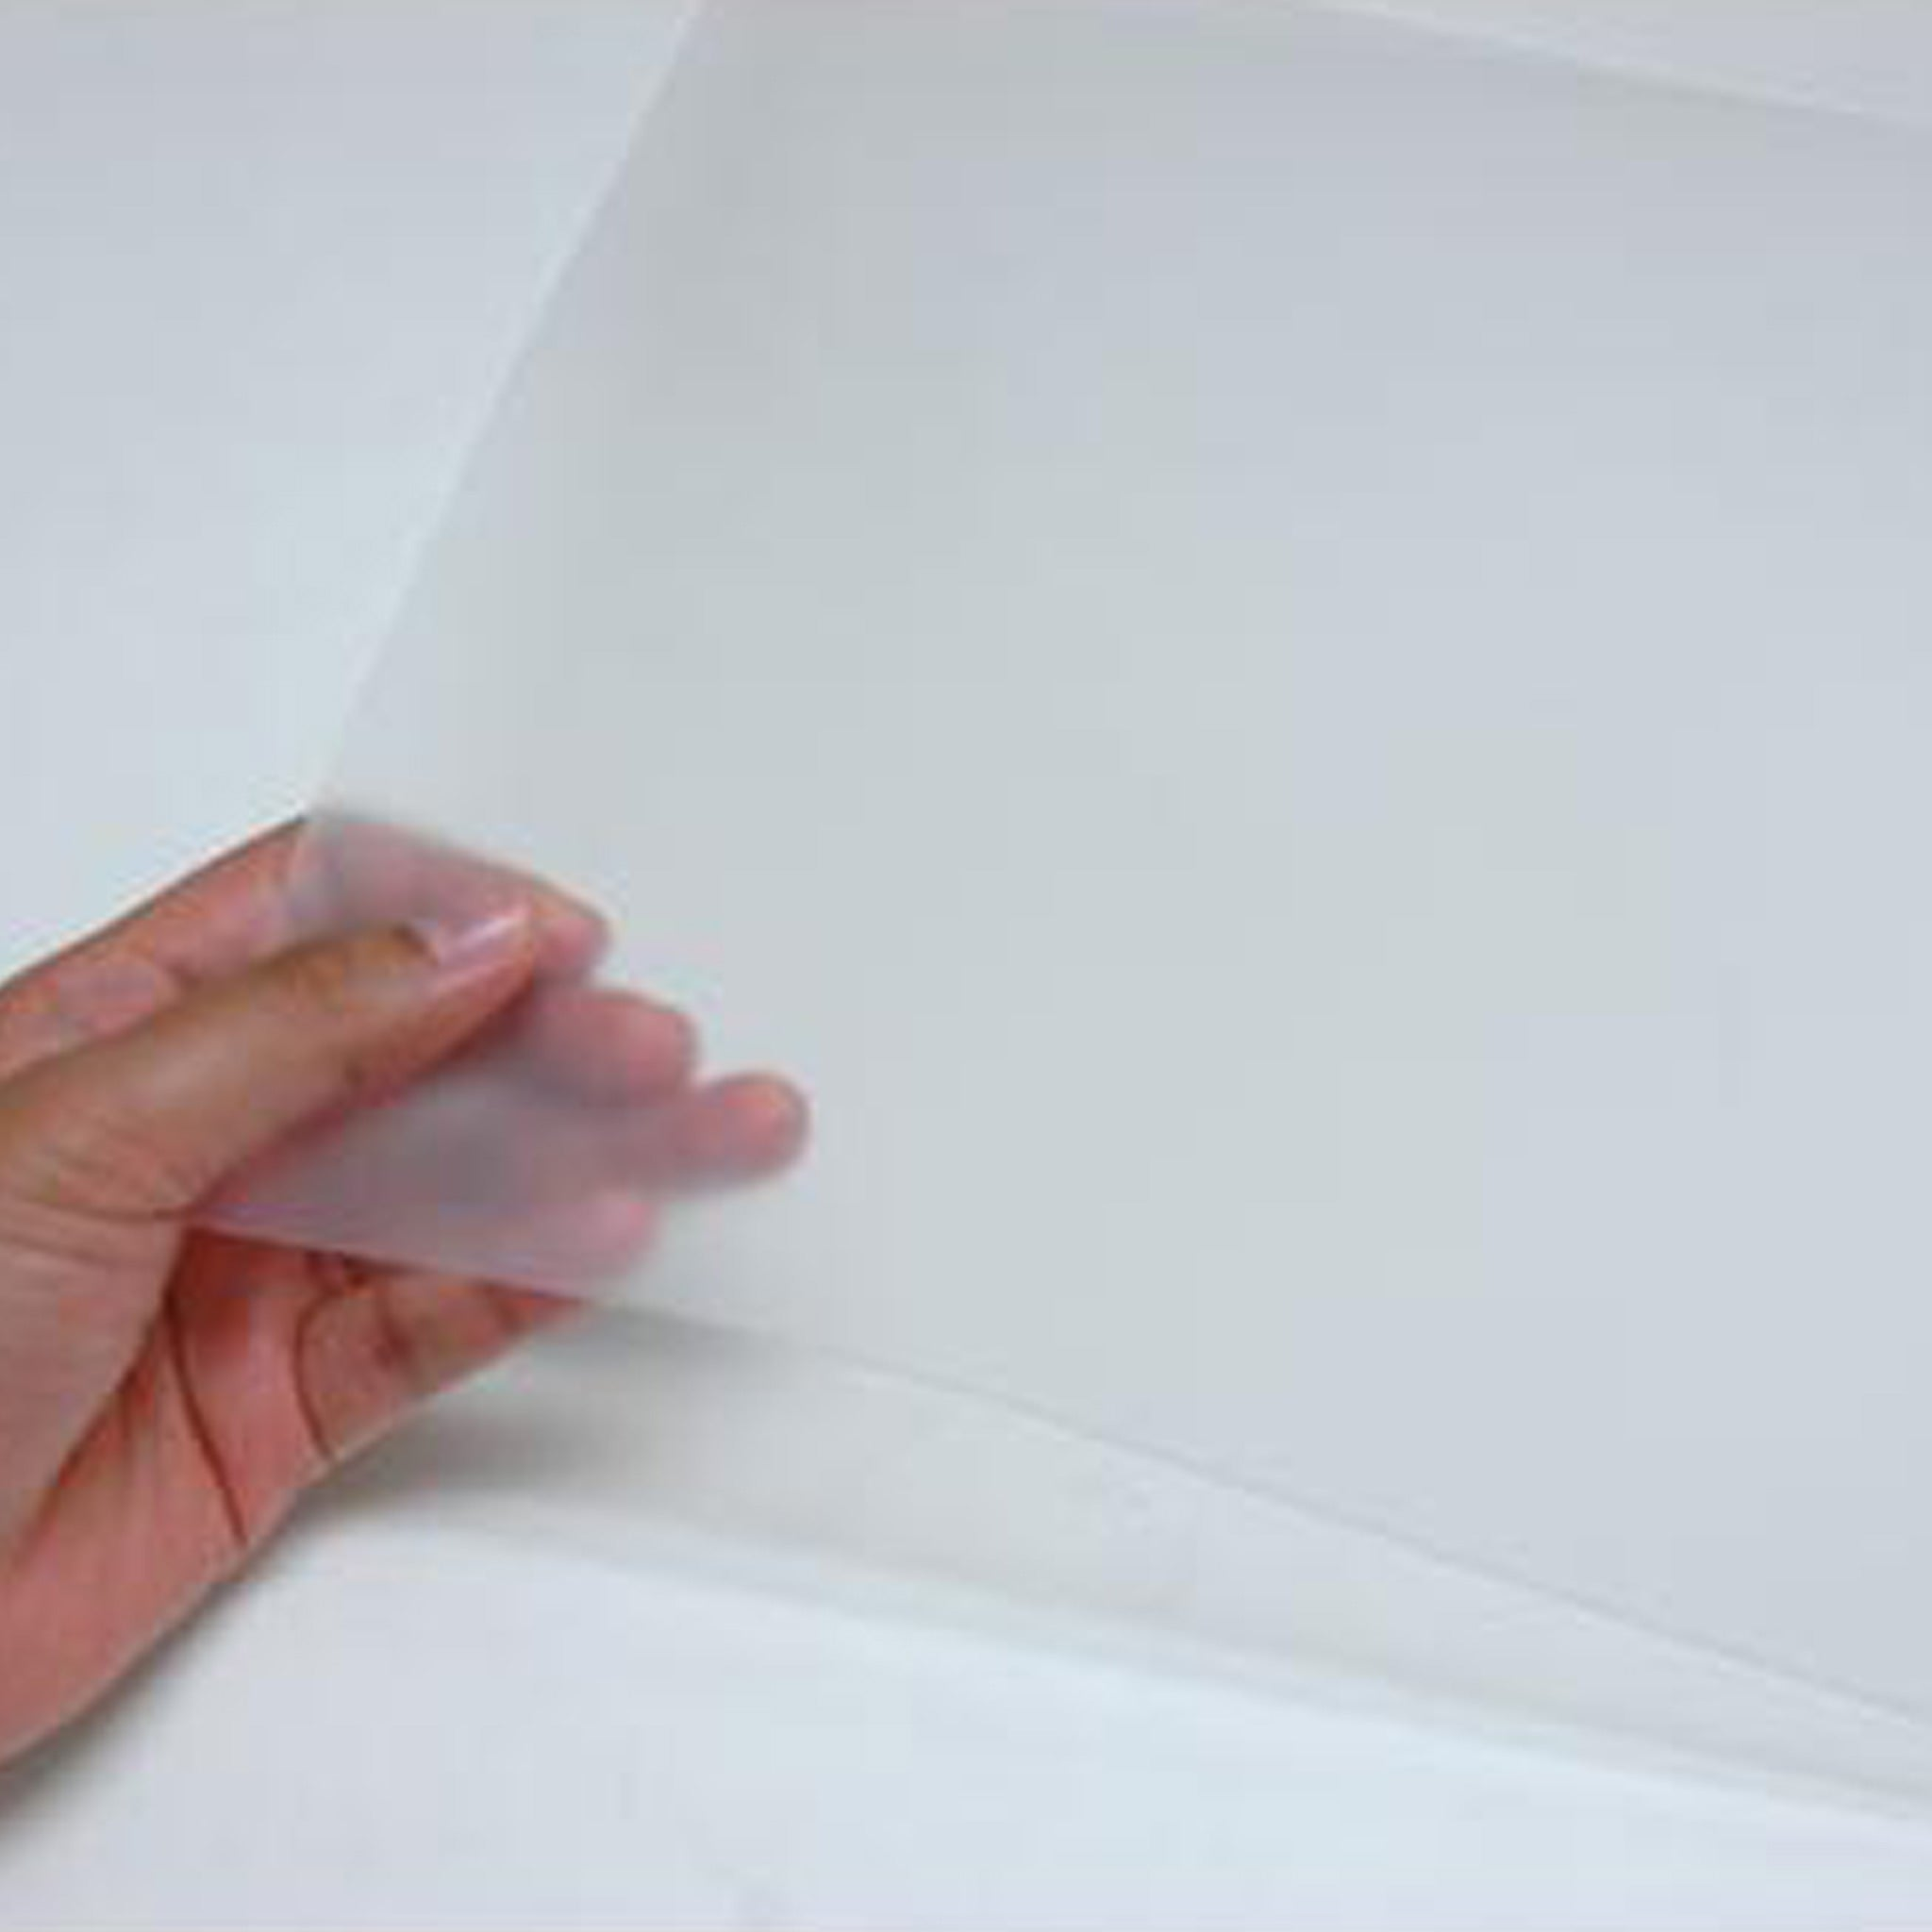 Sedona® PP Drying Sheets (BPA-free & PTFE-free) are our most economical choice, and they are free of BPA and PTFE chemicals. Designed to be used with the open tray to create a level surface, place one sheet inside the open tray and add your ingredients to the sheet. This low-cost option works great with all of your nut and cracker reci